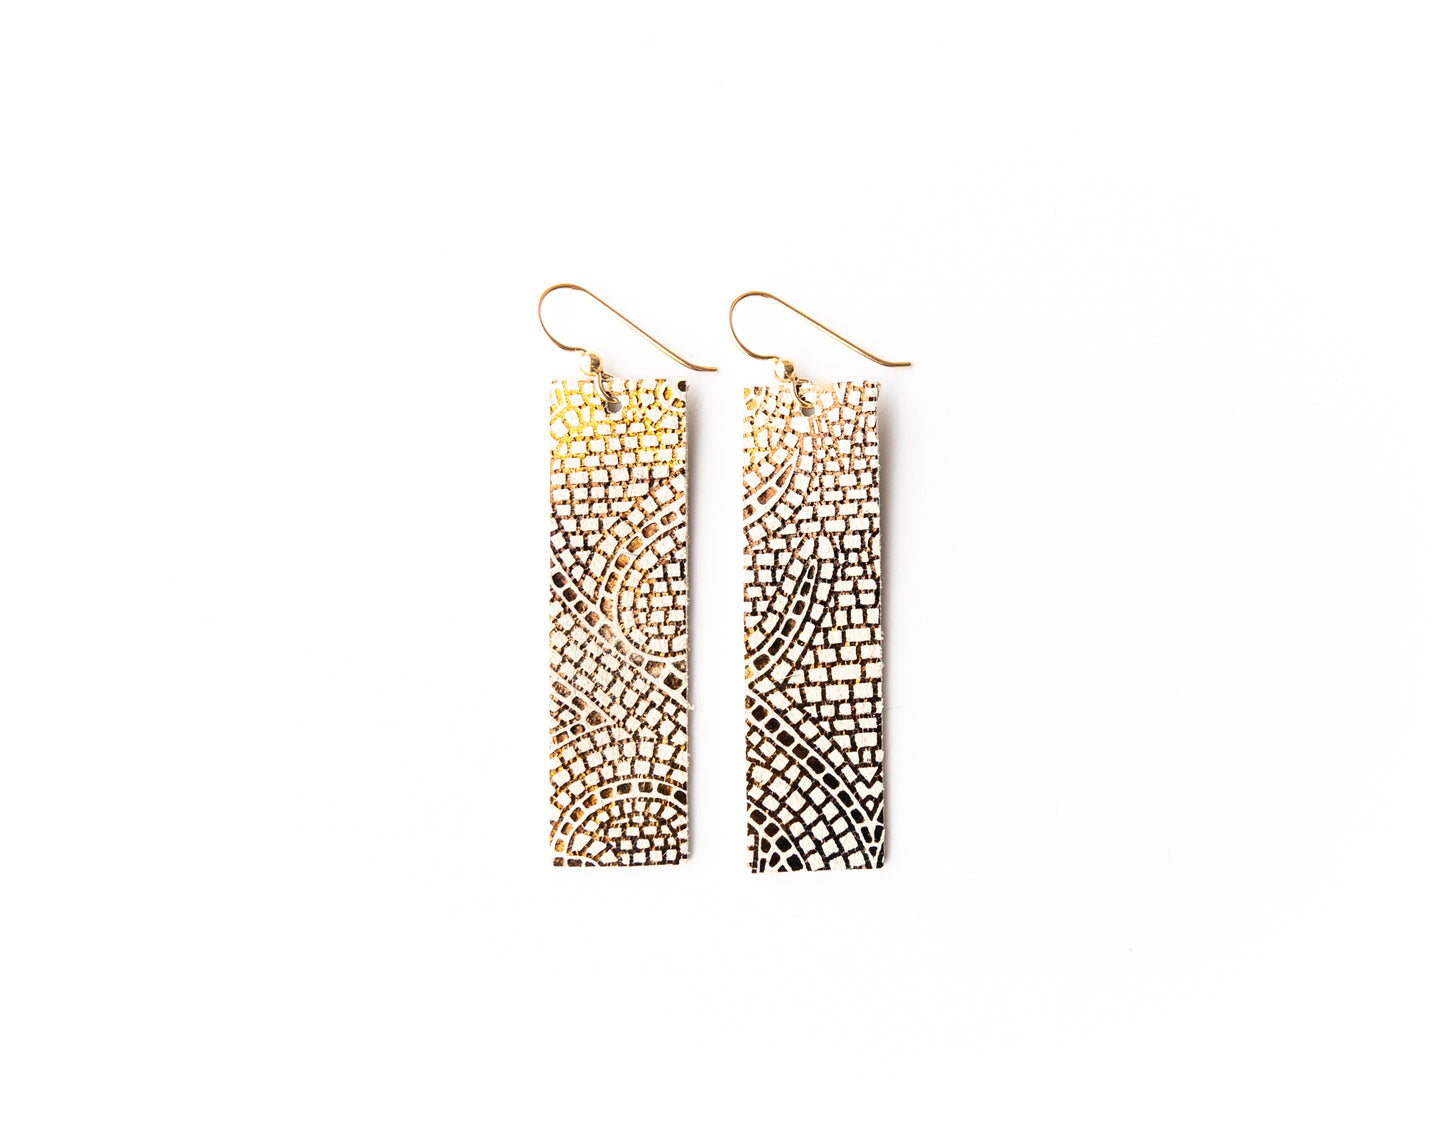 Mosaic Cream and Bronze Four Corners Leather Earrings